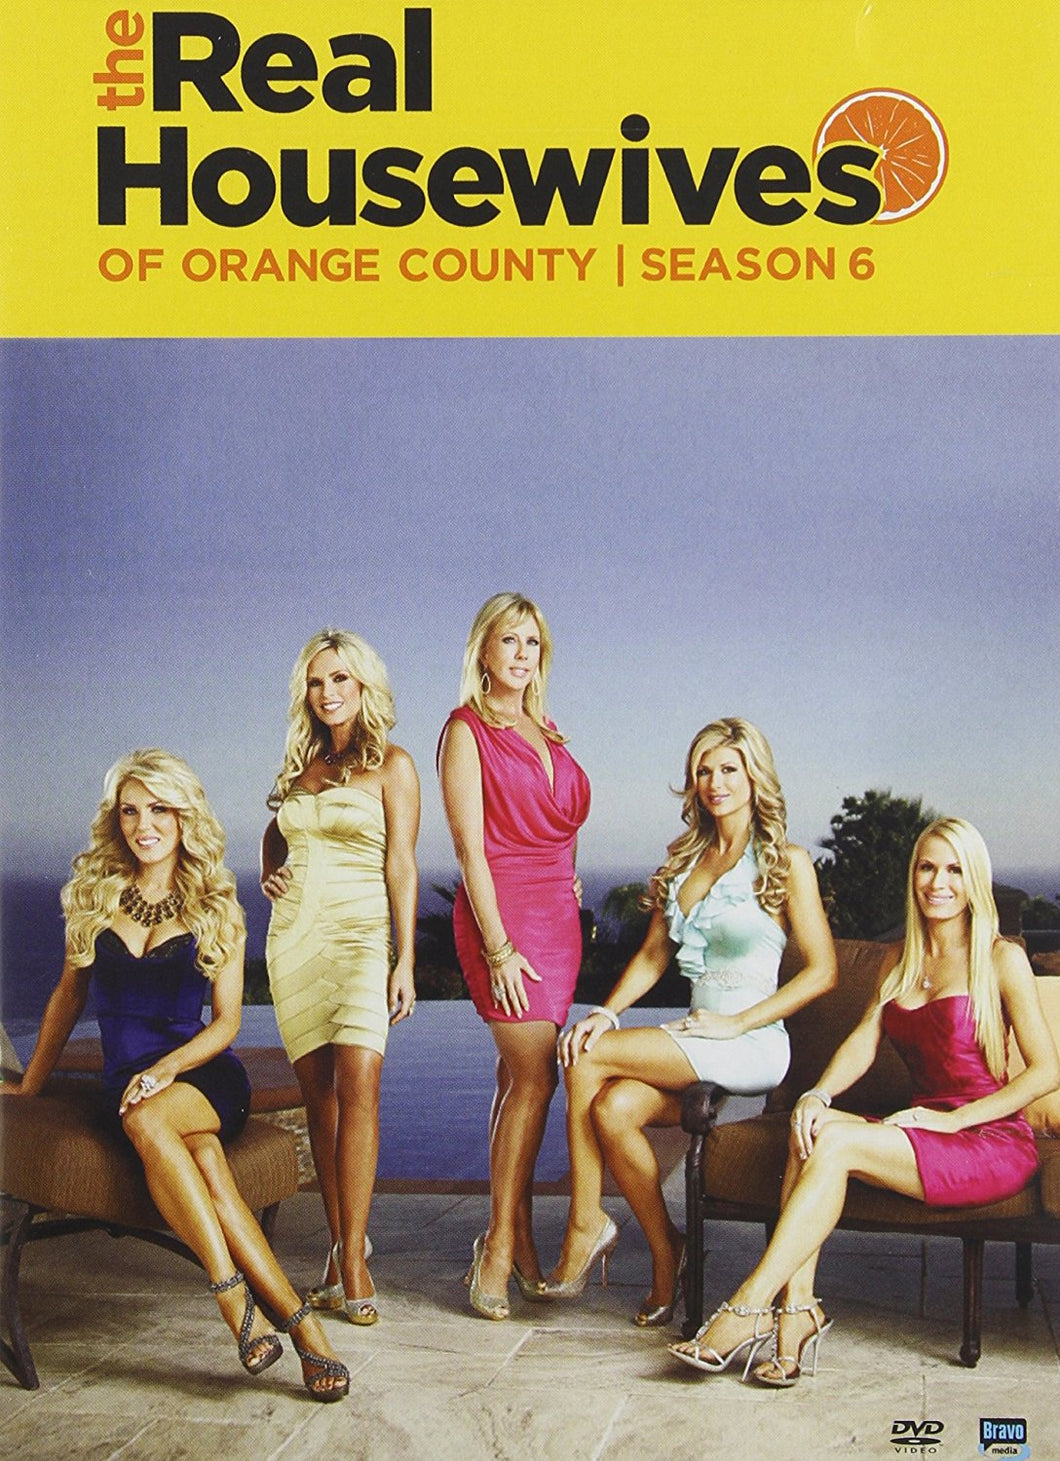 The Real Housewives of Orange County - Season 6 - DVD